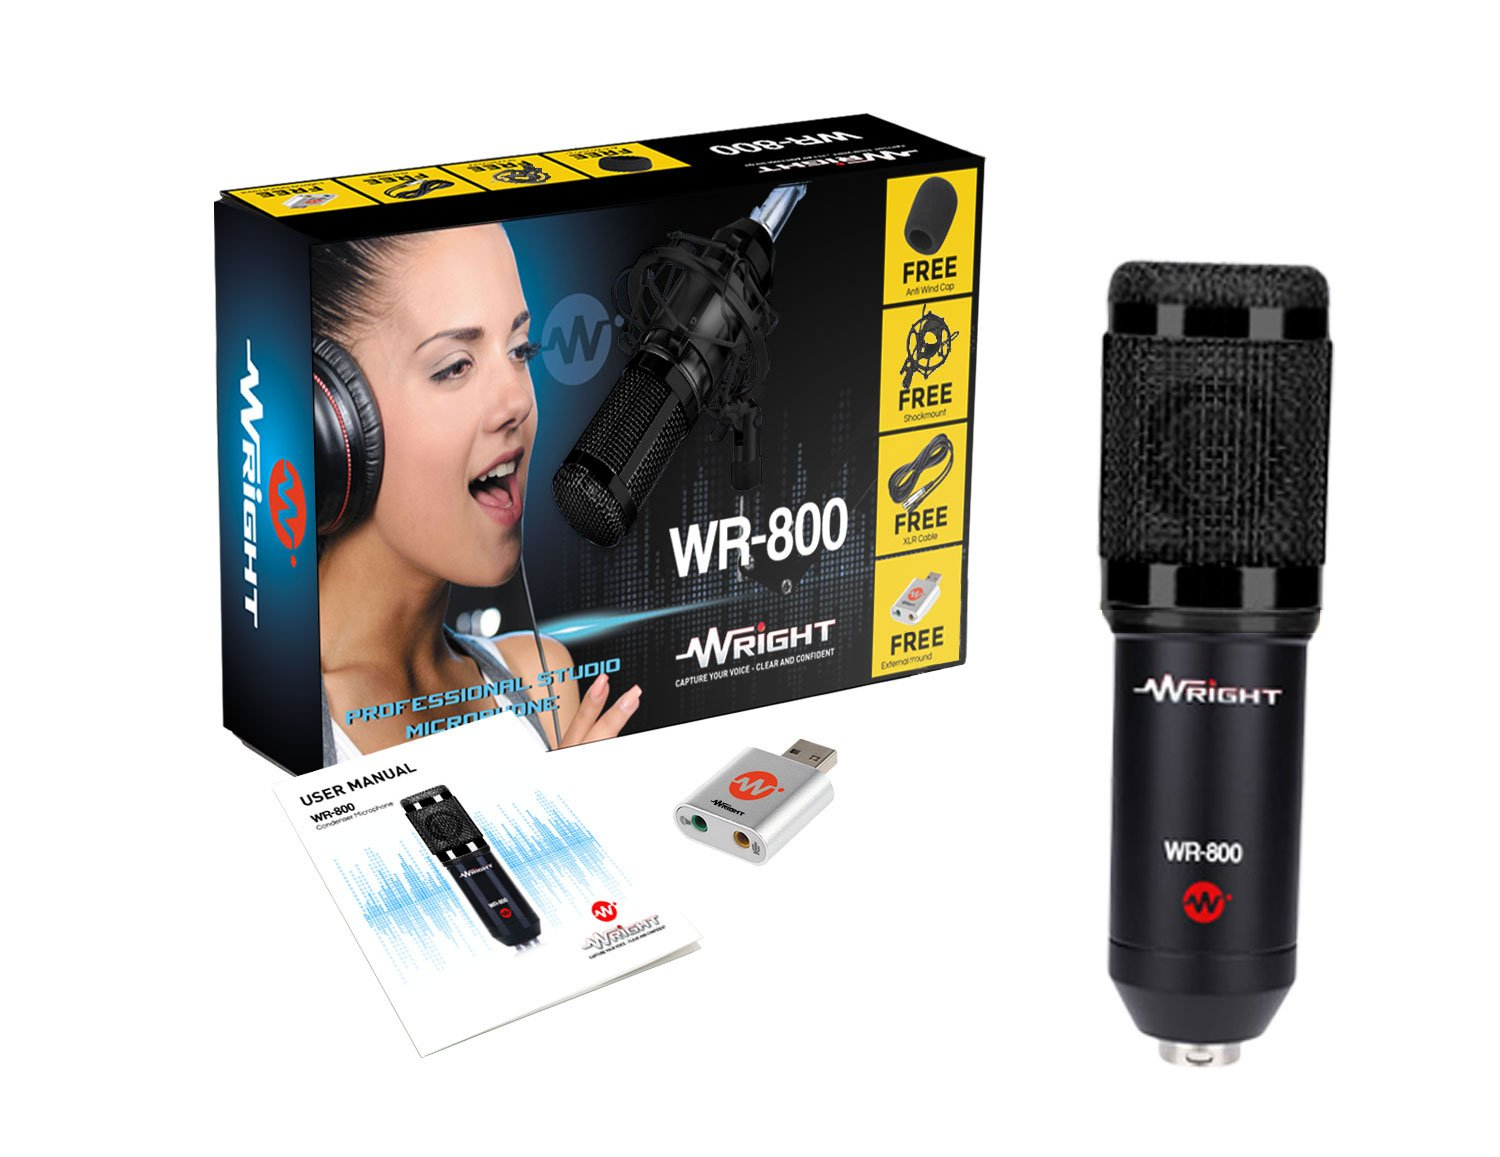 Wright WR 800 Condenser Microphone with Free USB Sound Card product image